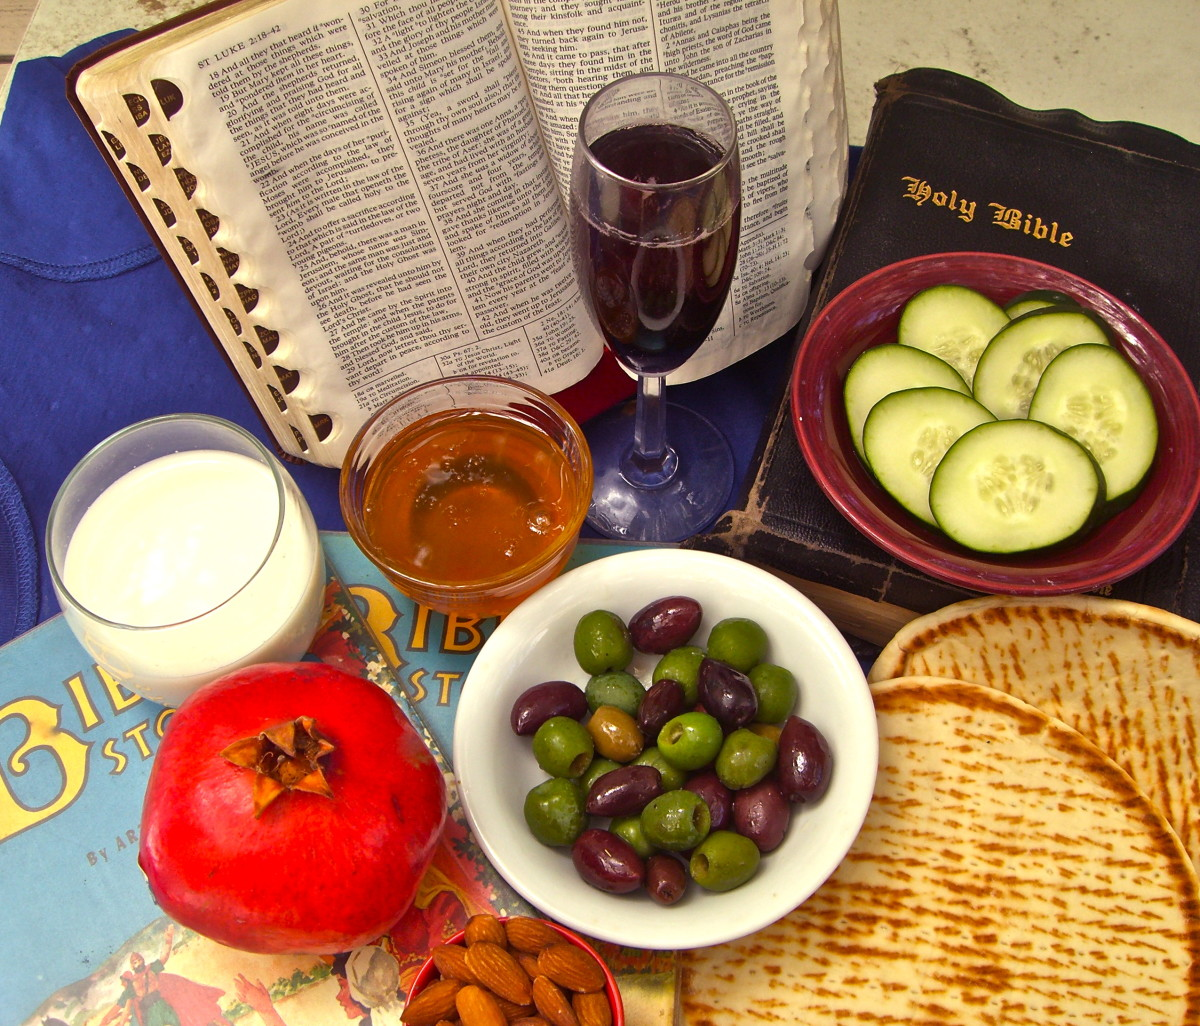 Eating Customs in the Bible